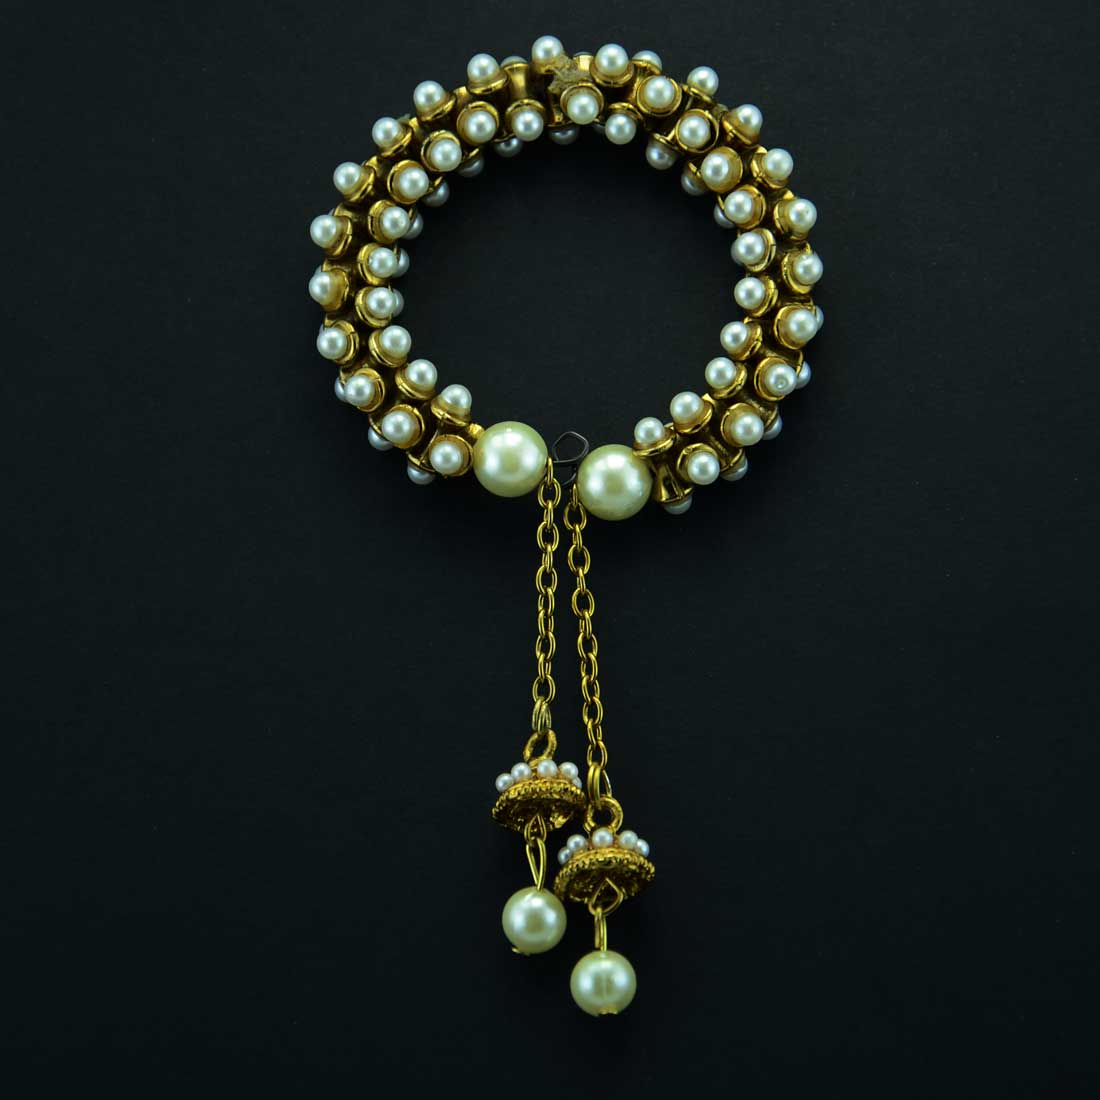 Gold Plated Beaded Bracelet With Tasseled Chain